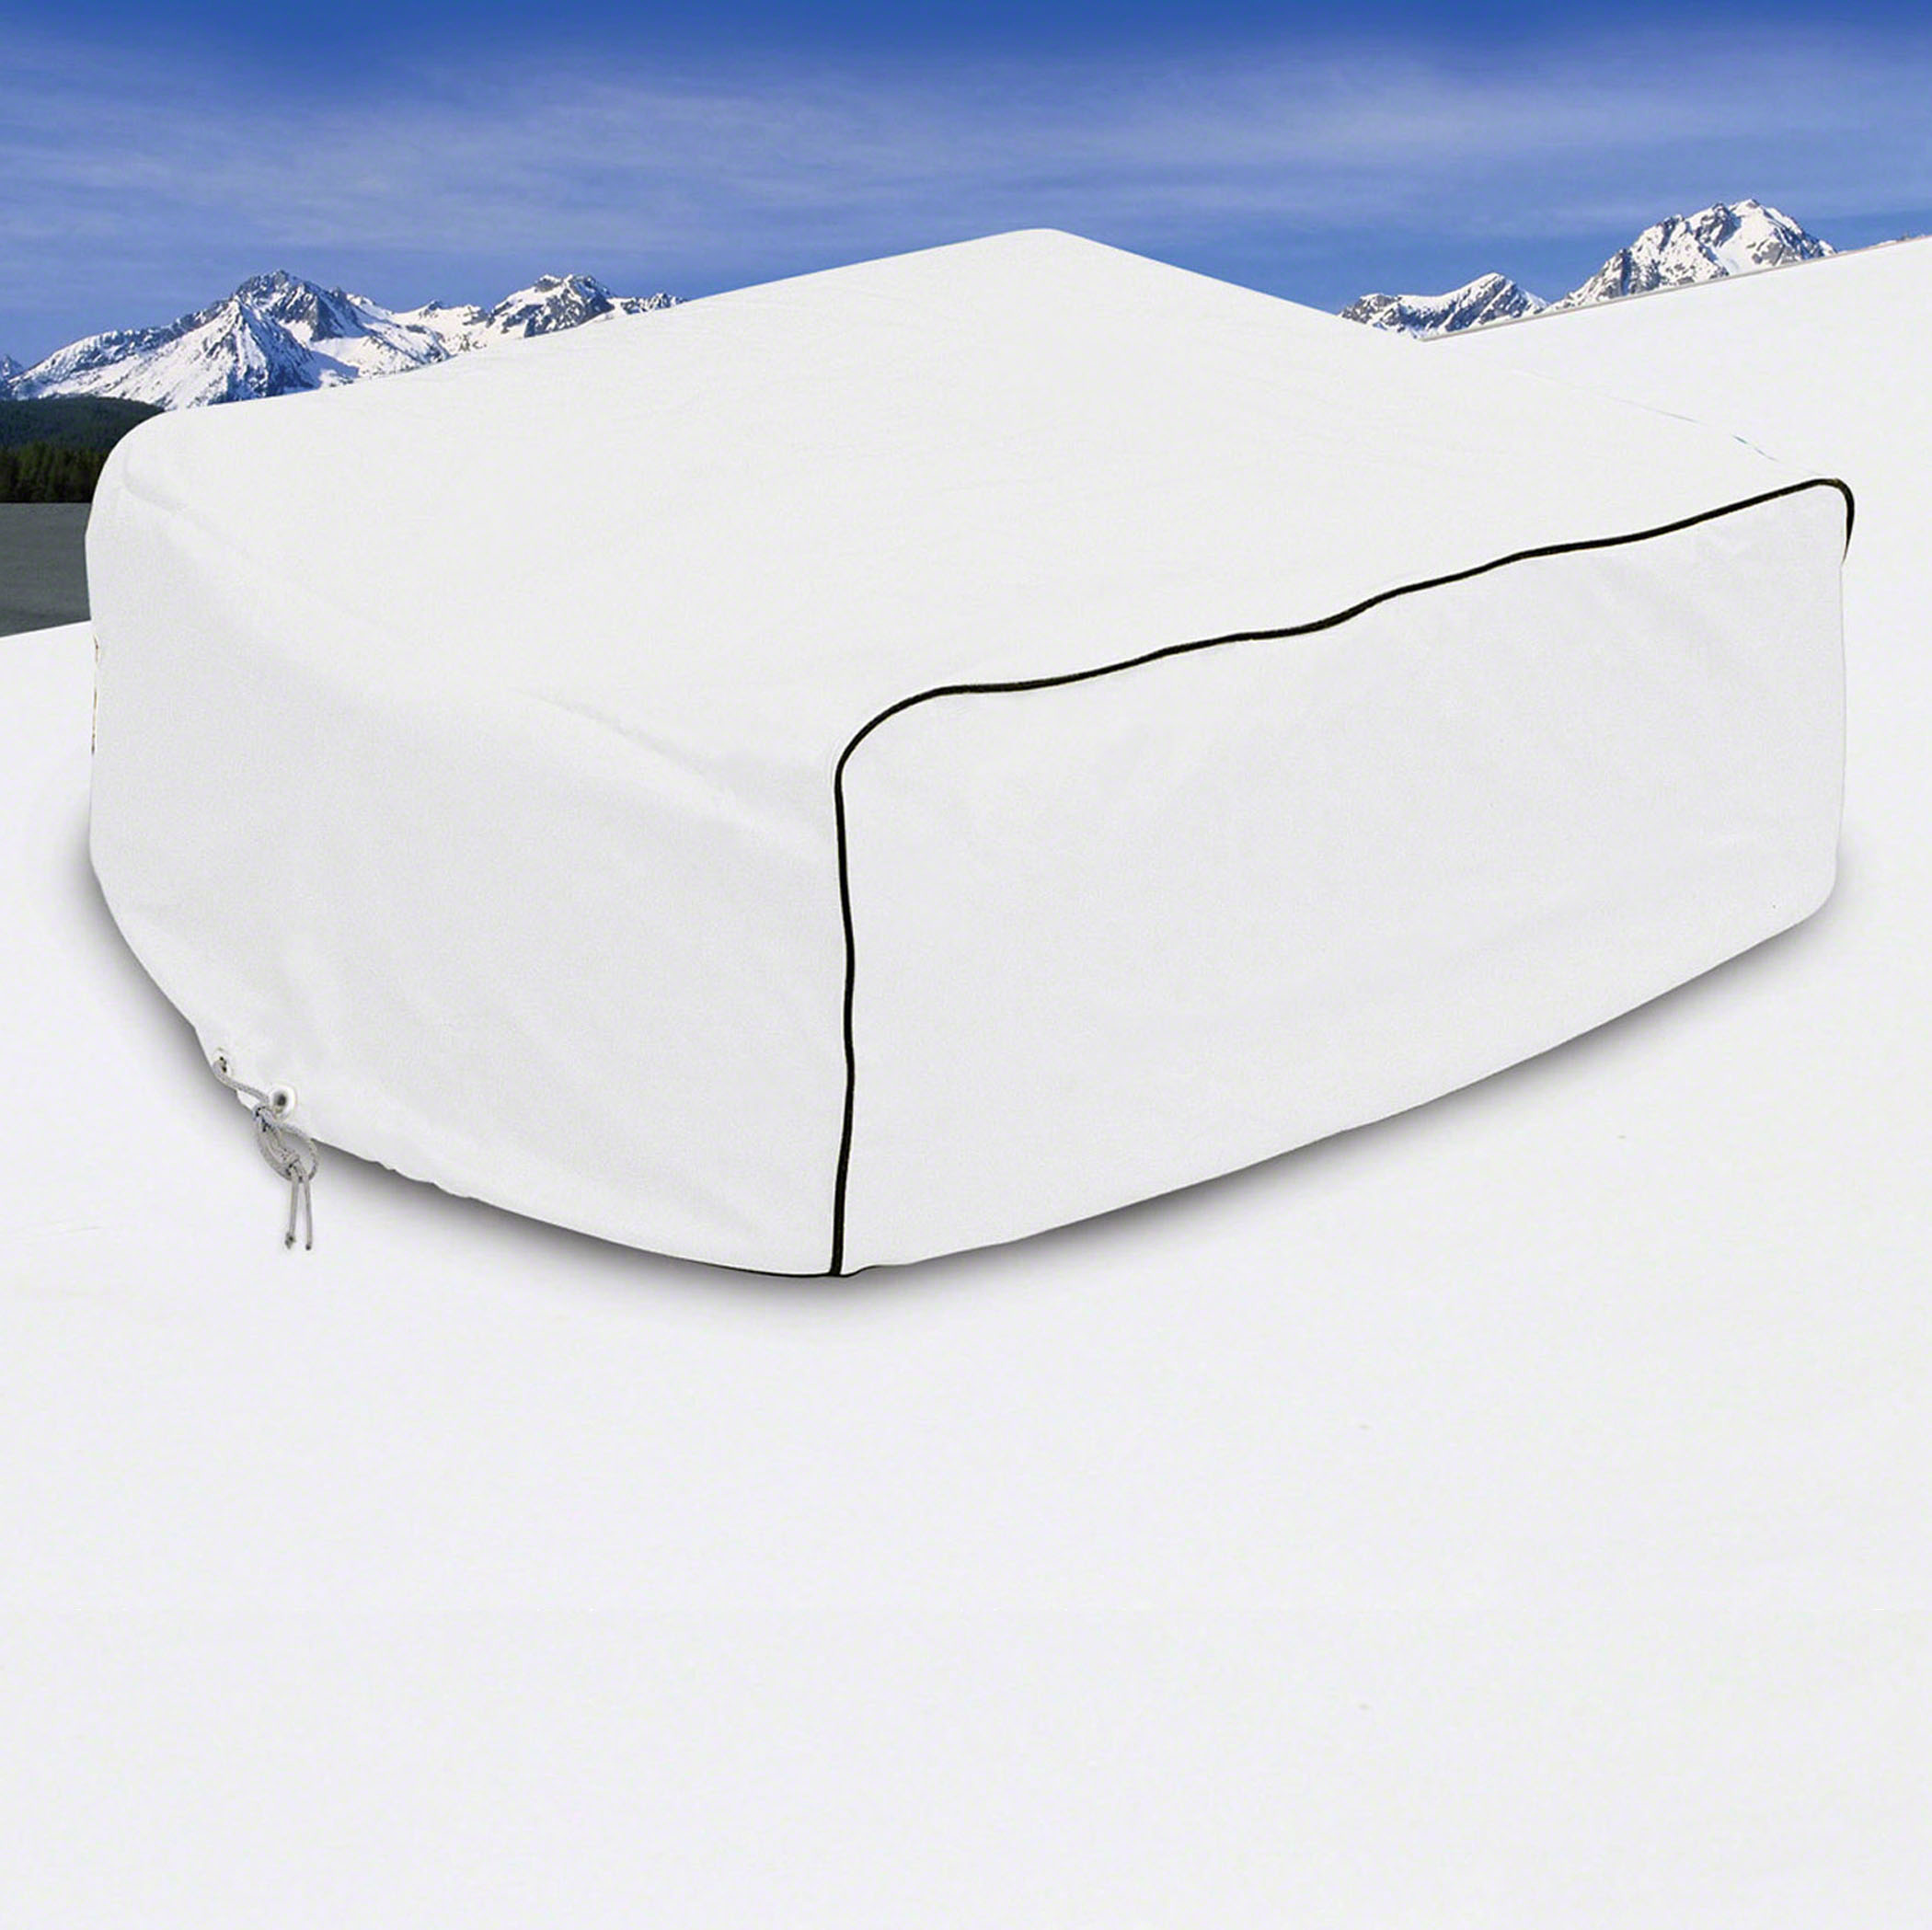 Classic Accessories OverDrive RV Air Conditioner Cover, Fits Duo-Therm Briskair and Quick Cool, White